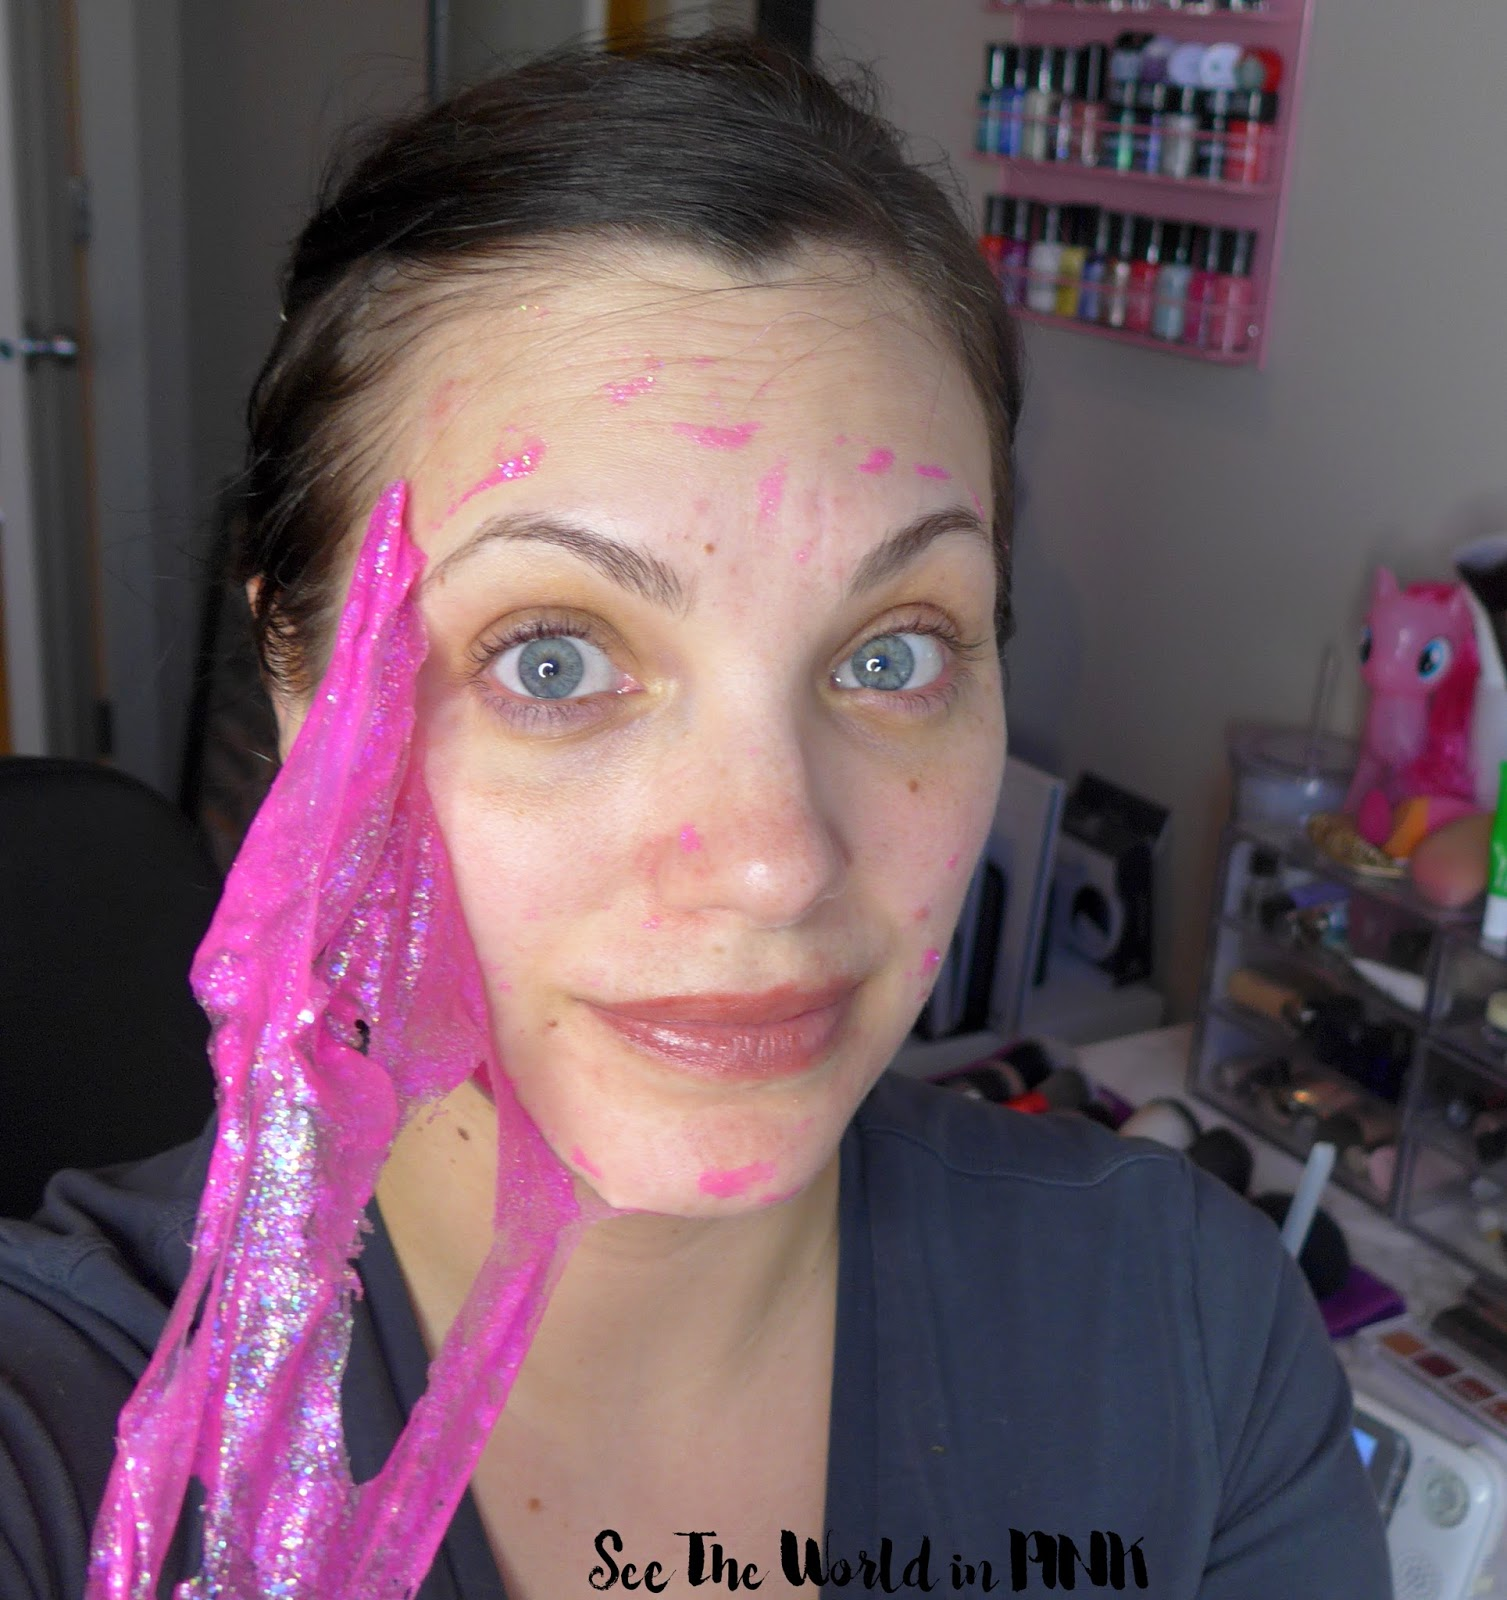 Mask Wednesday - Glamglow x My Little Pony #GlitterMask Pink Glitter GravityMud Firming Treatment